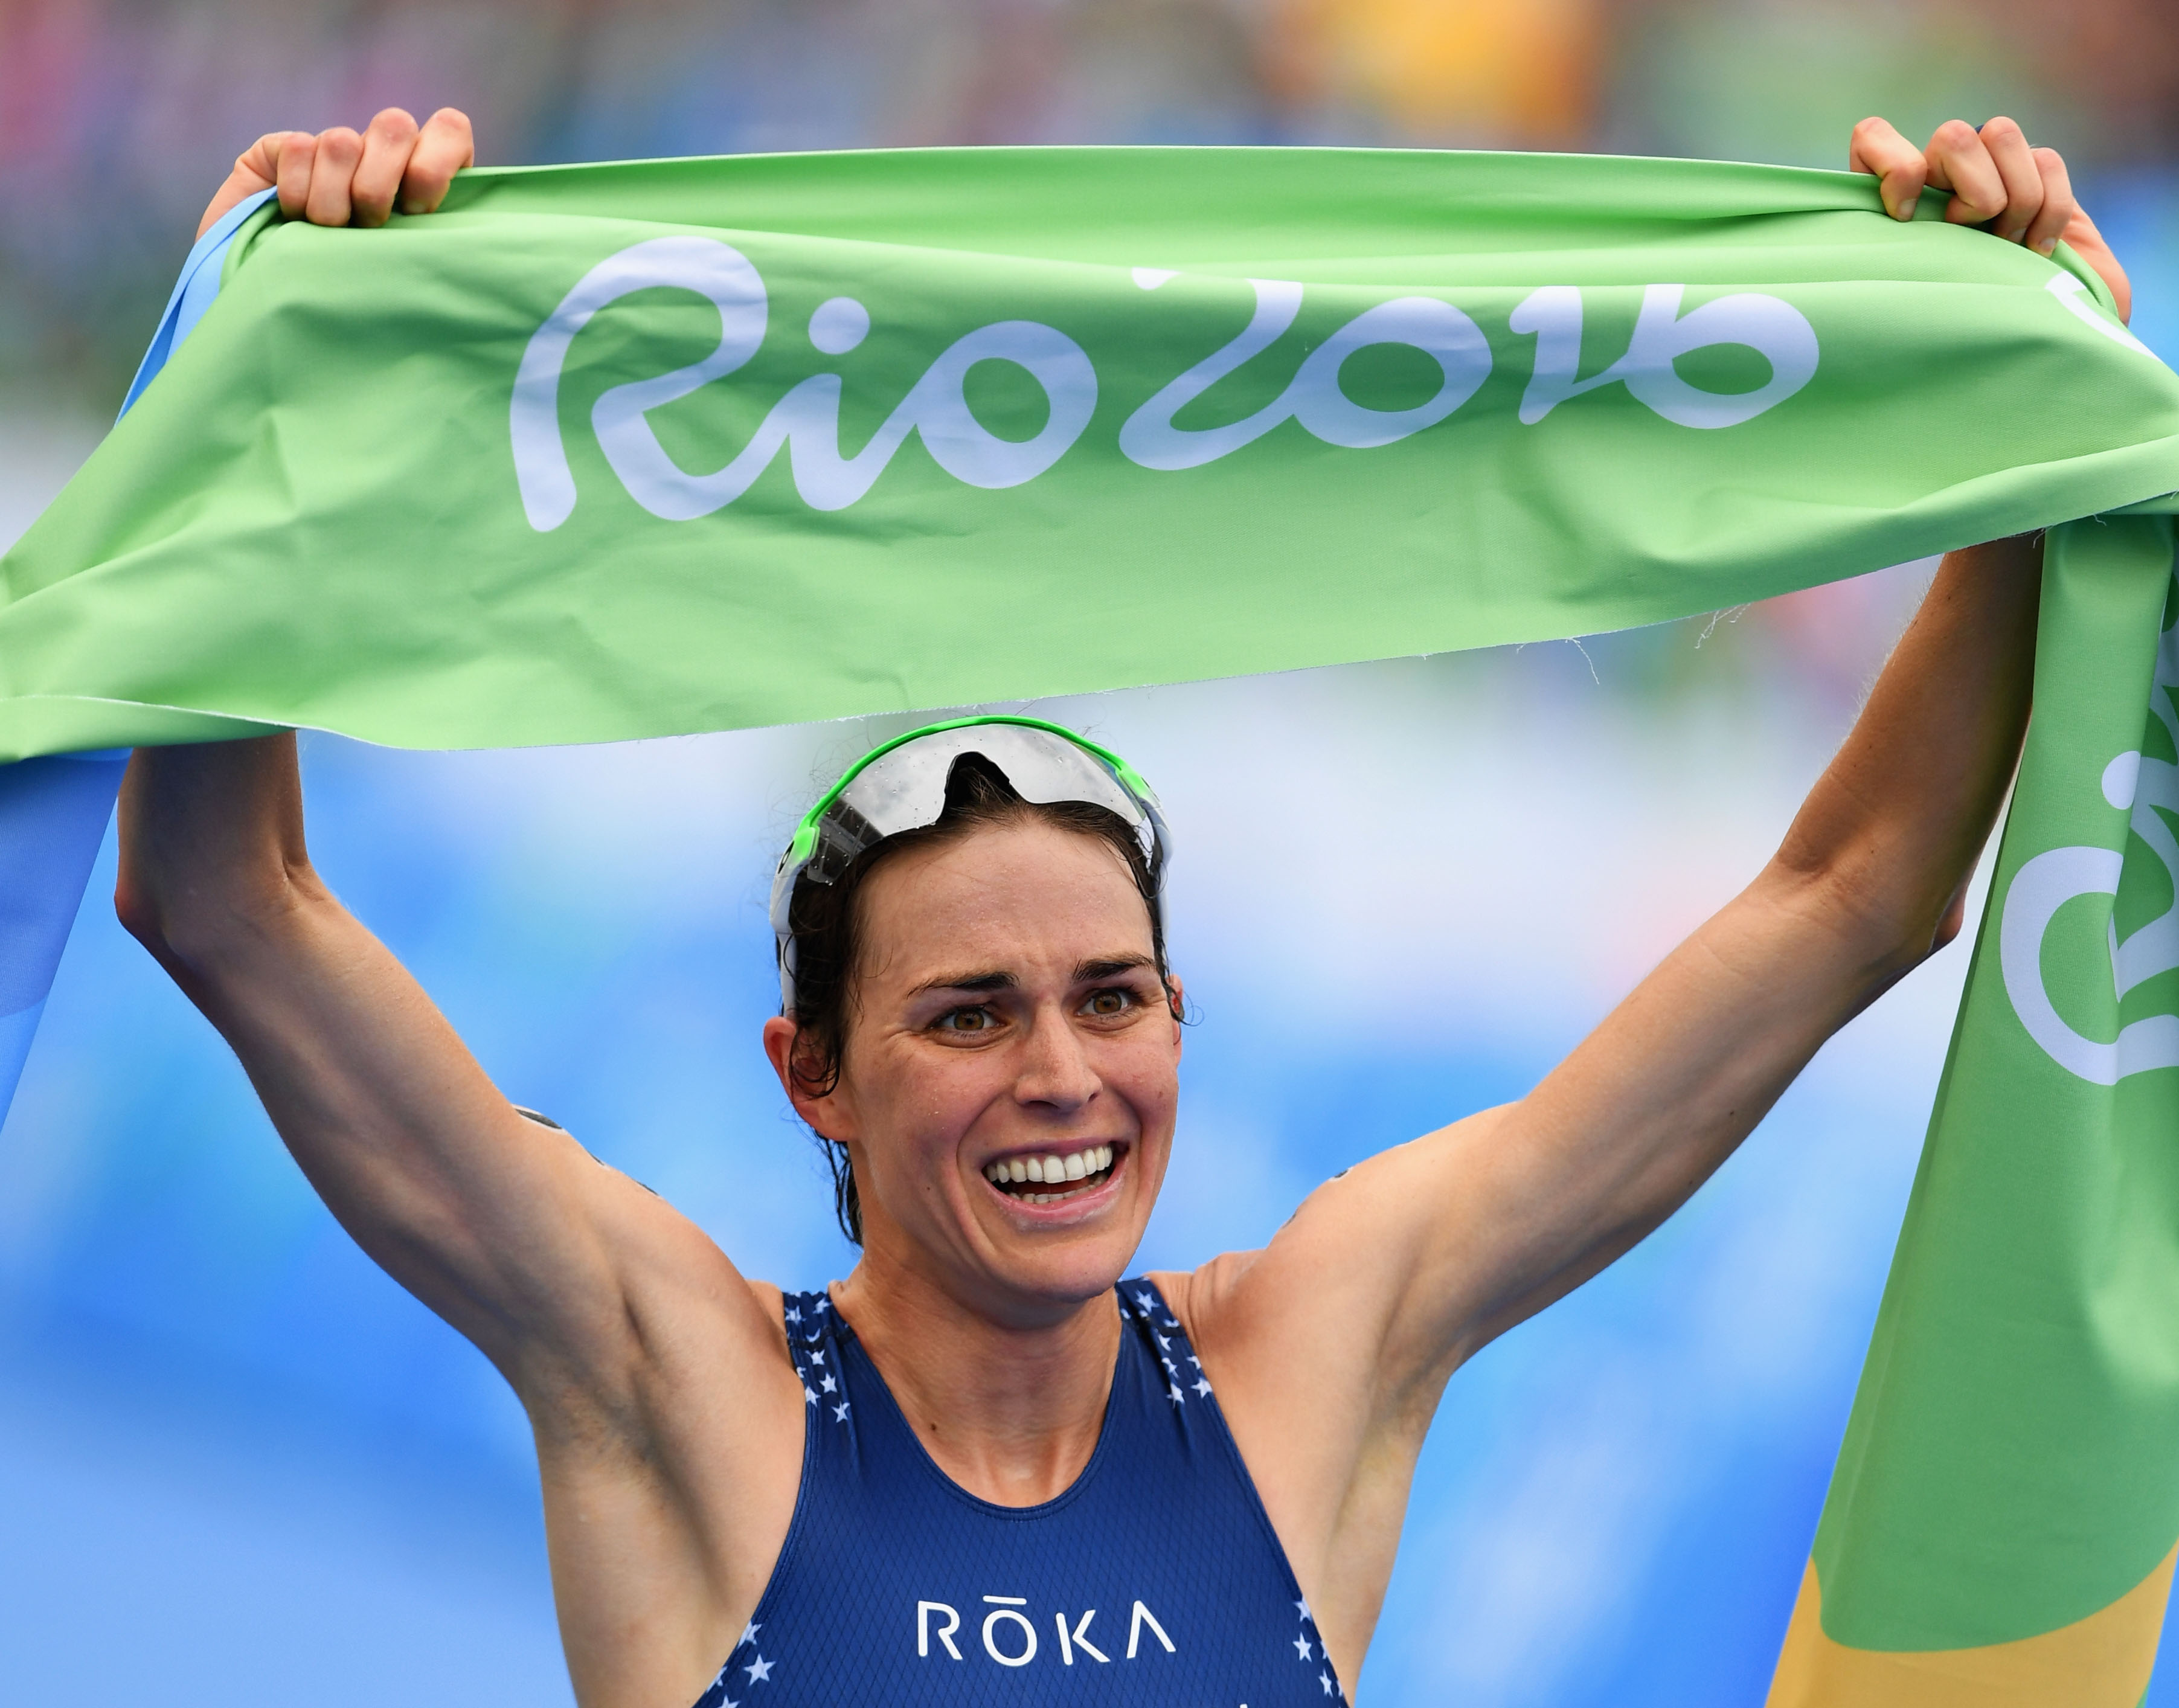 RIO DE JANEIRO, BRAZIL - AUGUST 20:  Gwen Jorgensen of the United States celebrates as she wins gold during the Women's Triathlon on Day 15 of the Rio 2016 Olympic Games at Fort Copacabana on August 20, 2016 in Rio de Janeiro, Brazil.  (Photo by Quinn Rooney/Getty Images)